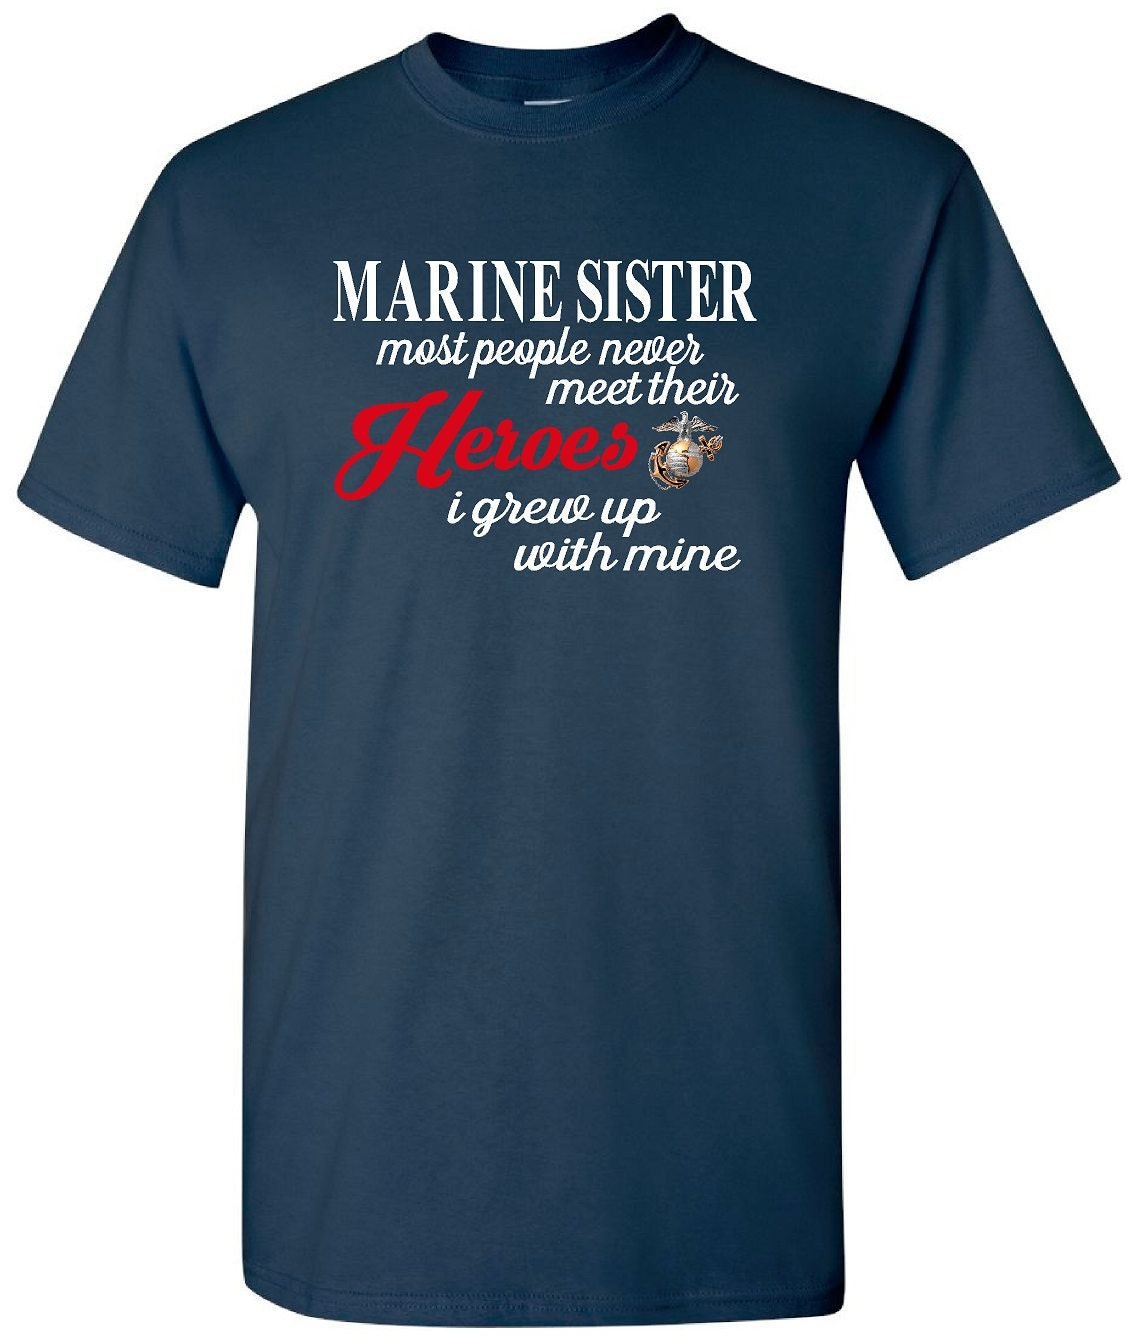 marine sister t shirt military tee shirt marine by. Black Bedroom Furniture Sets. Home Design Ideas